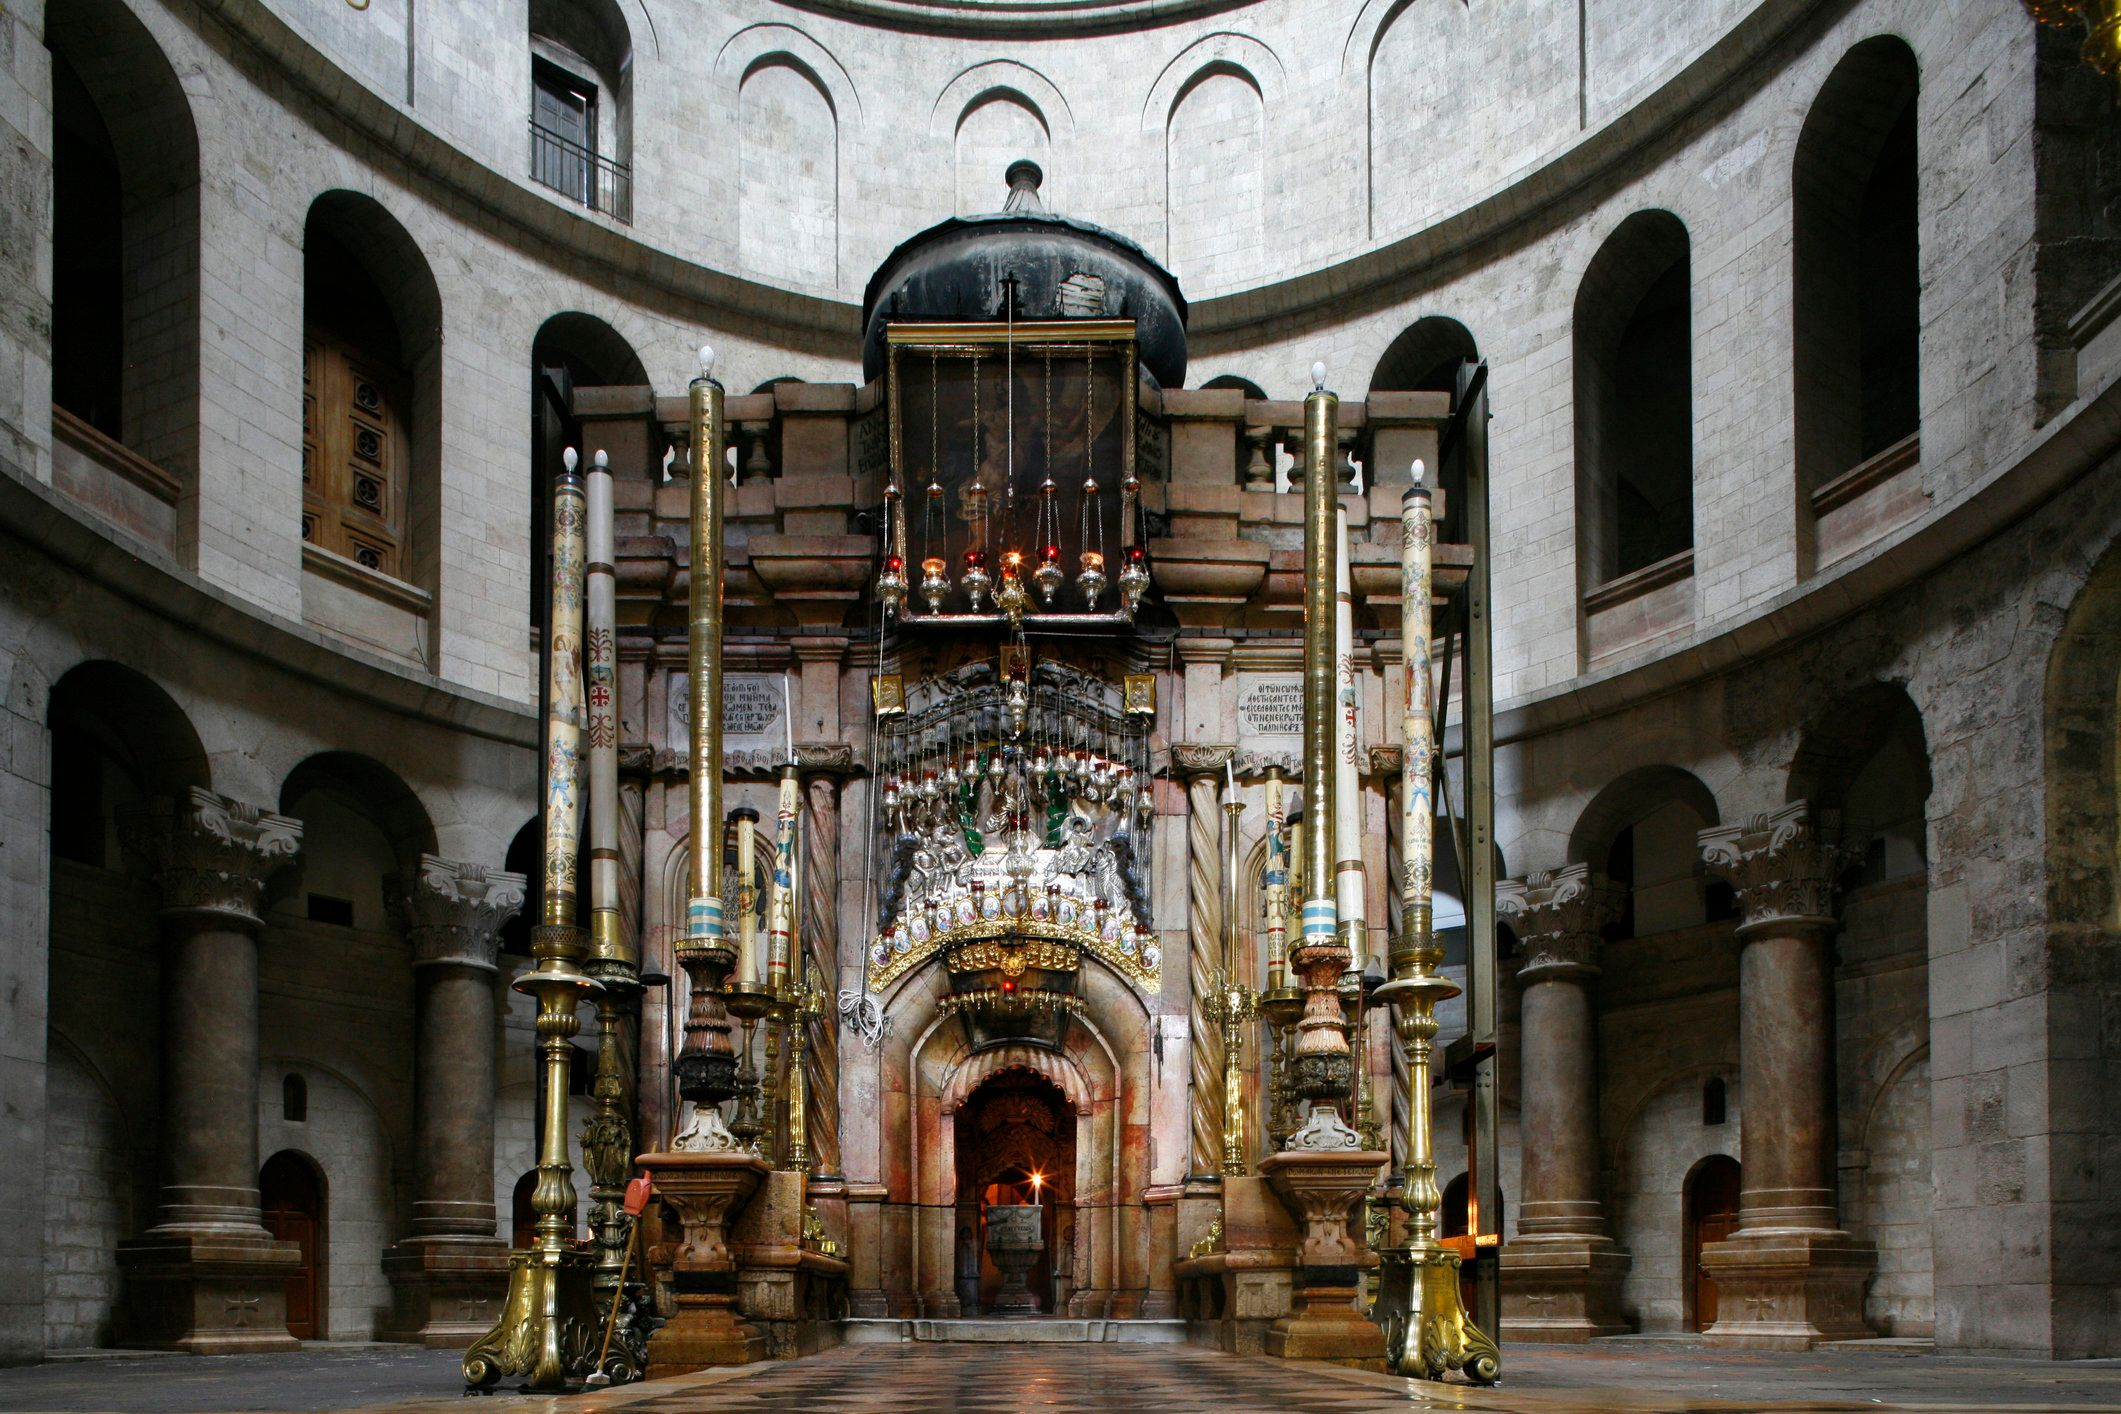 Tomb of Jesus at Church of the Holy Sepulchre